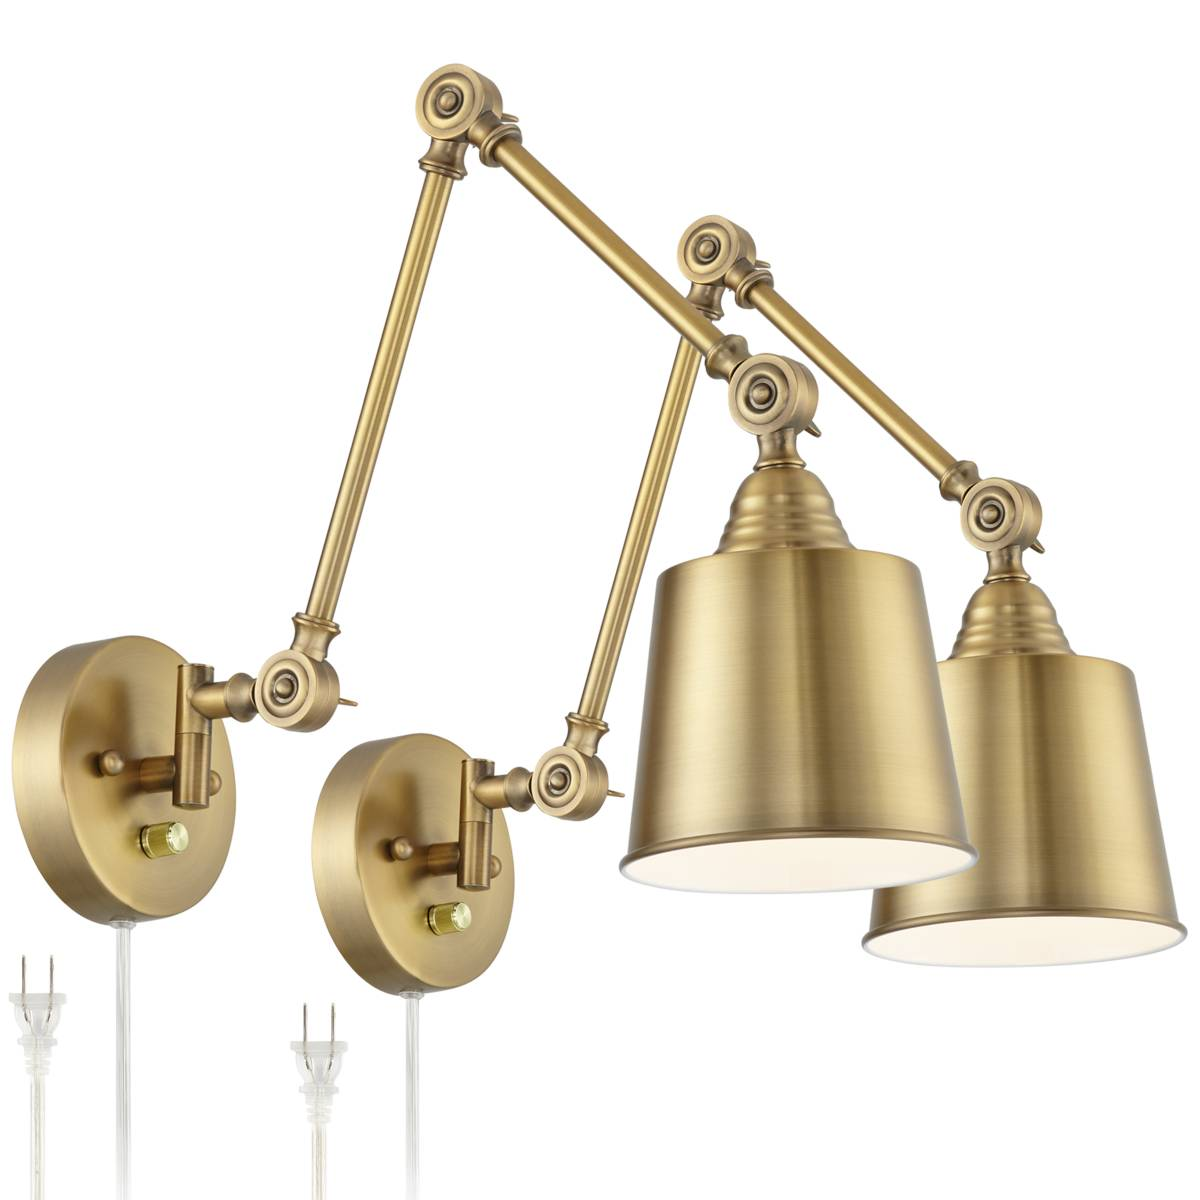 Swing Arm Wall Lamp Designs